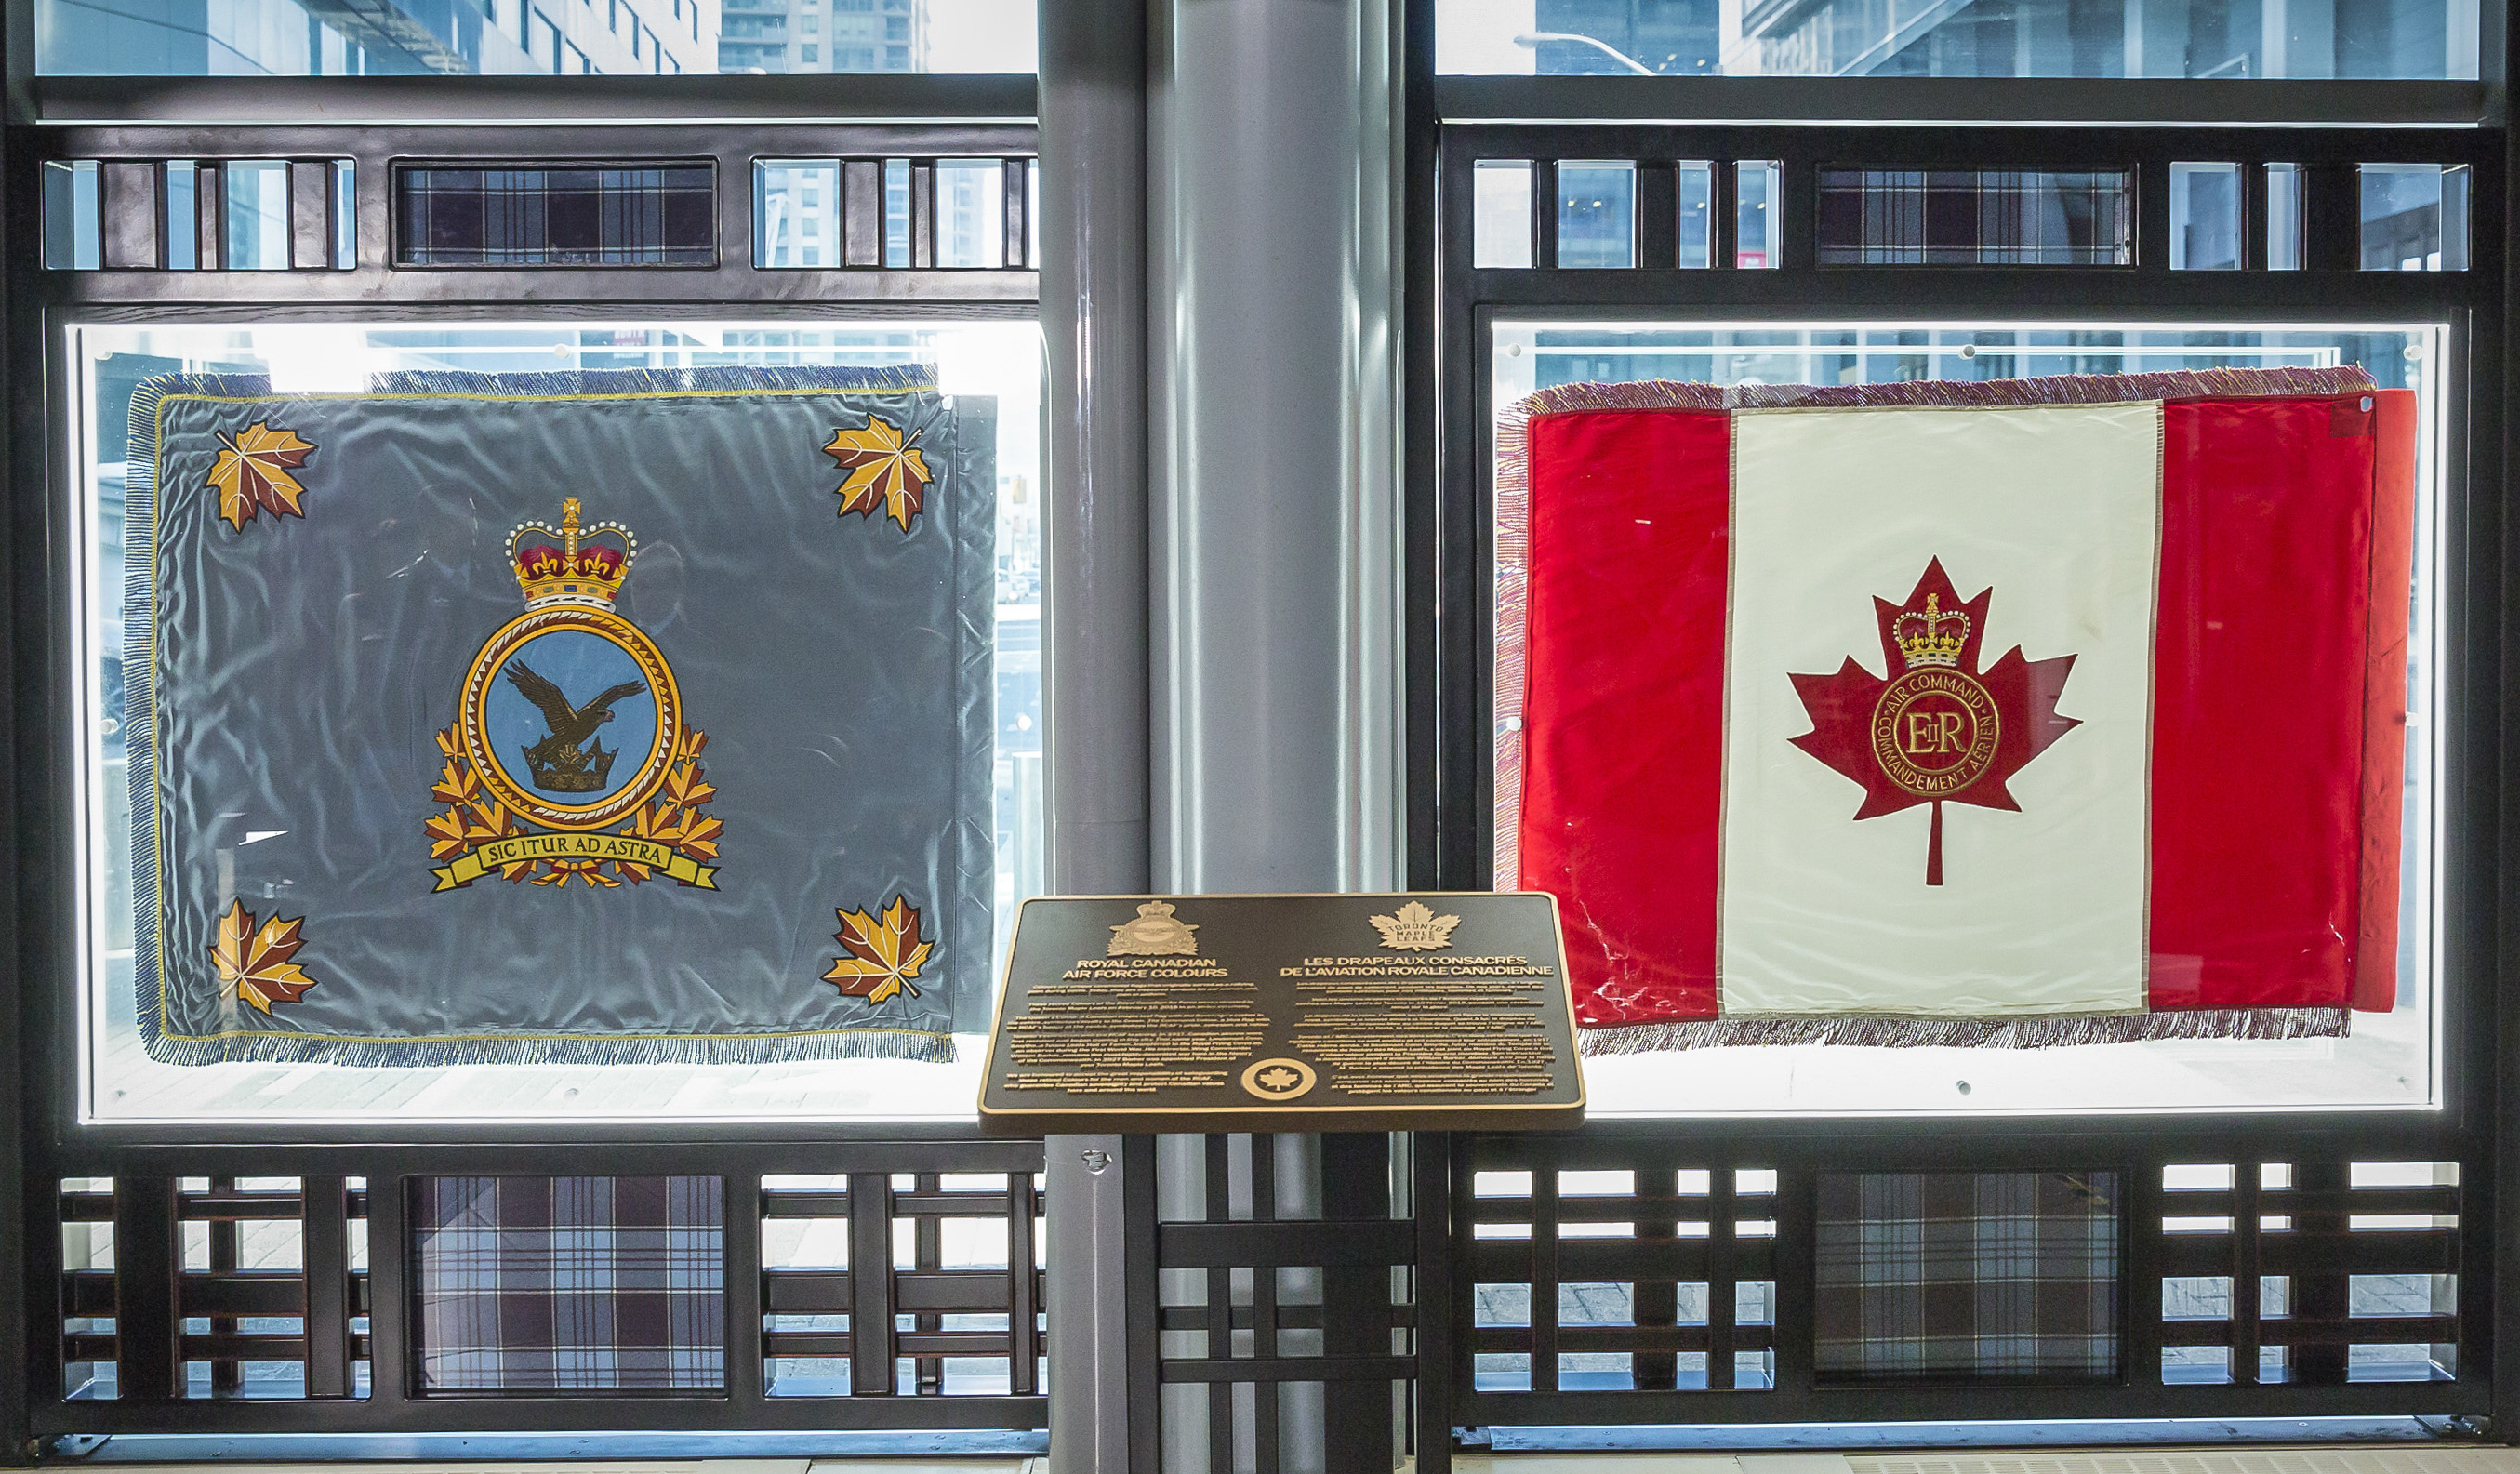 Two flags are displayed flat inside a glass wall with a plaque on a pedestal in front of them.